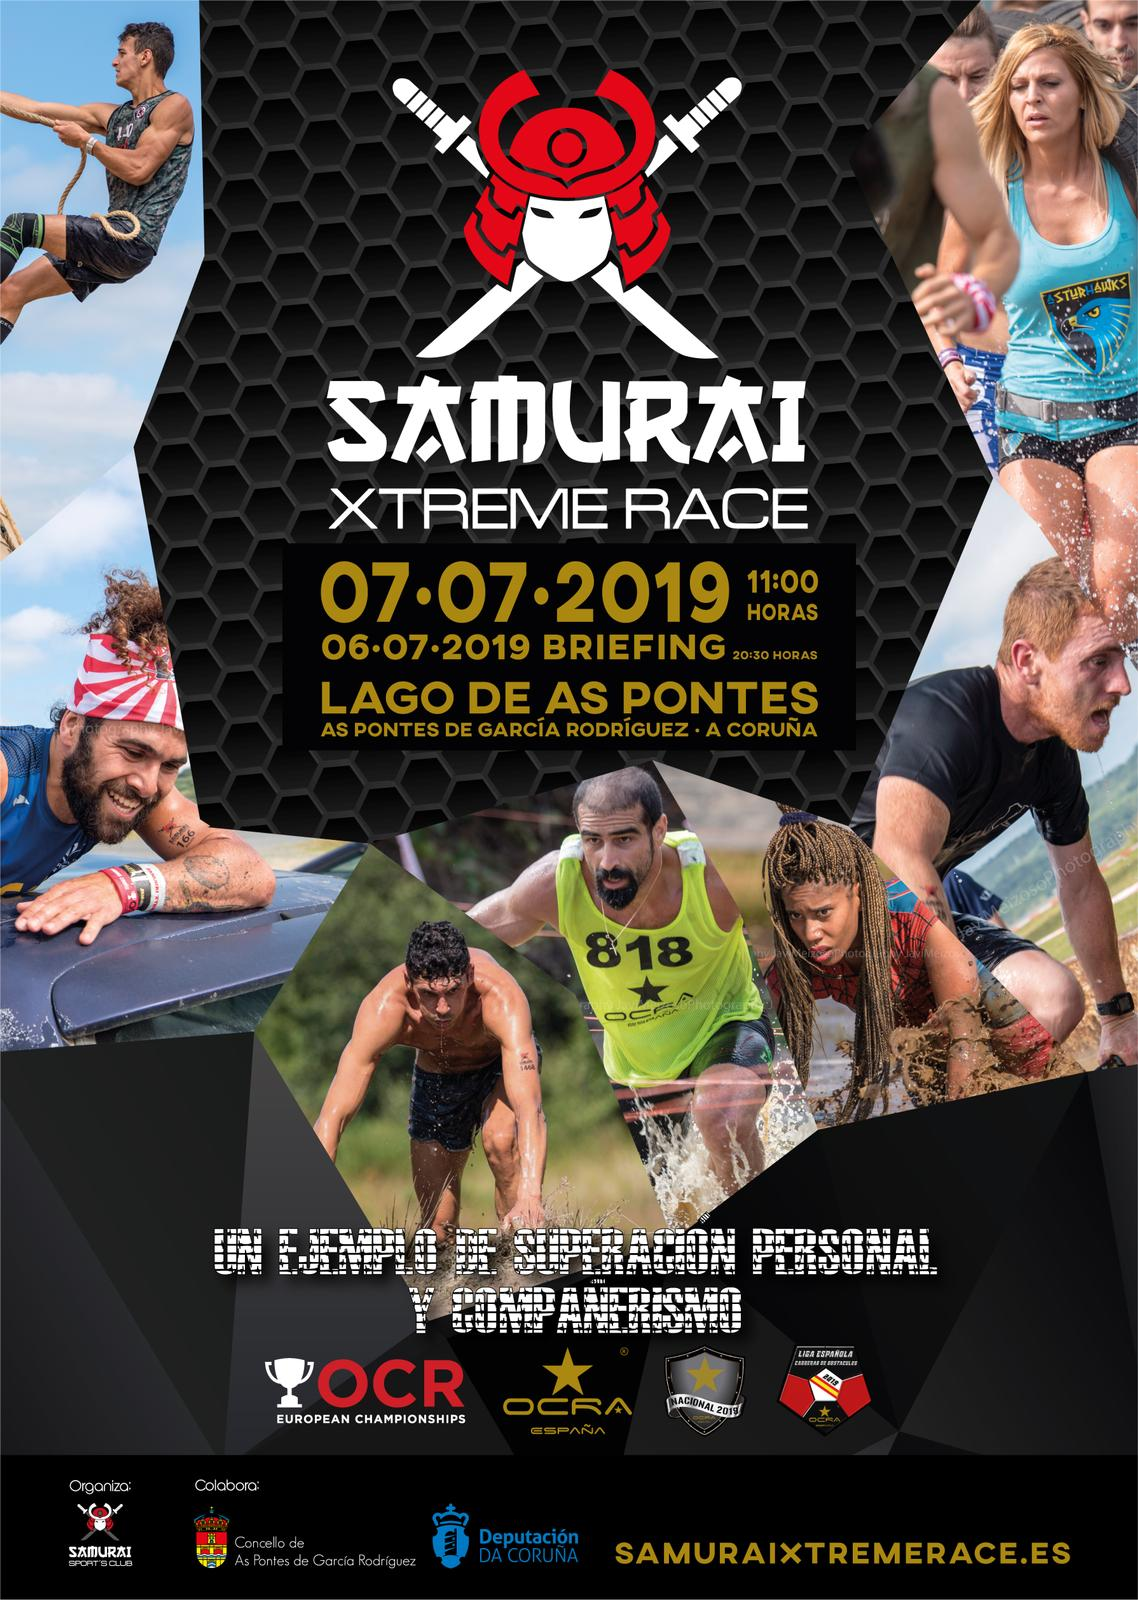 Carreras De Obstaculos Calendario.Samurai Xtreme Race As Pontes Carrera De Obstaculos